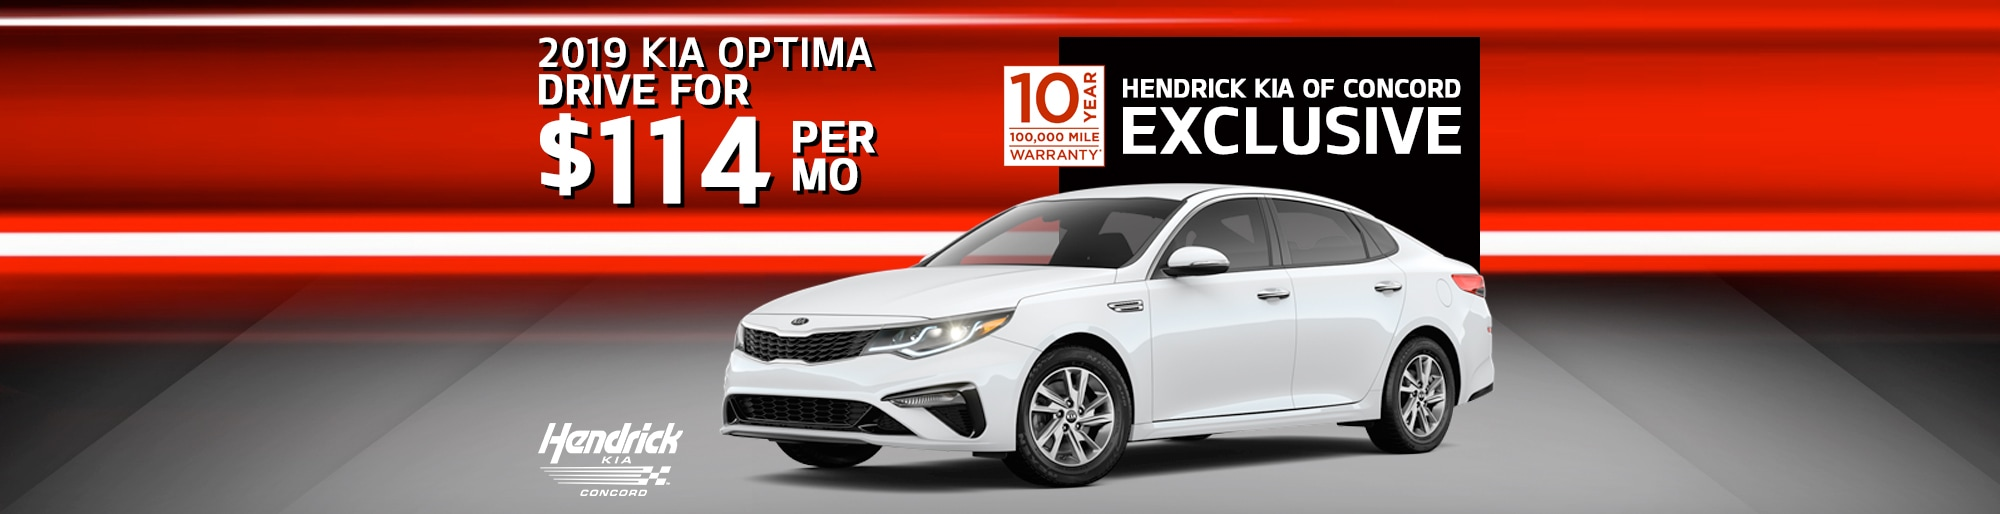 Hendrick Kia Charlotte >> Hendrick Kia of Concord | New Kia & Used Car Dealership Near Salisbury